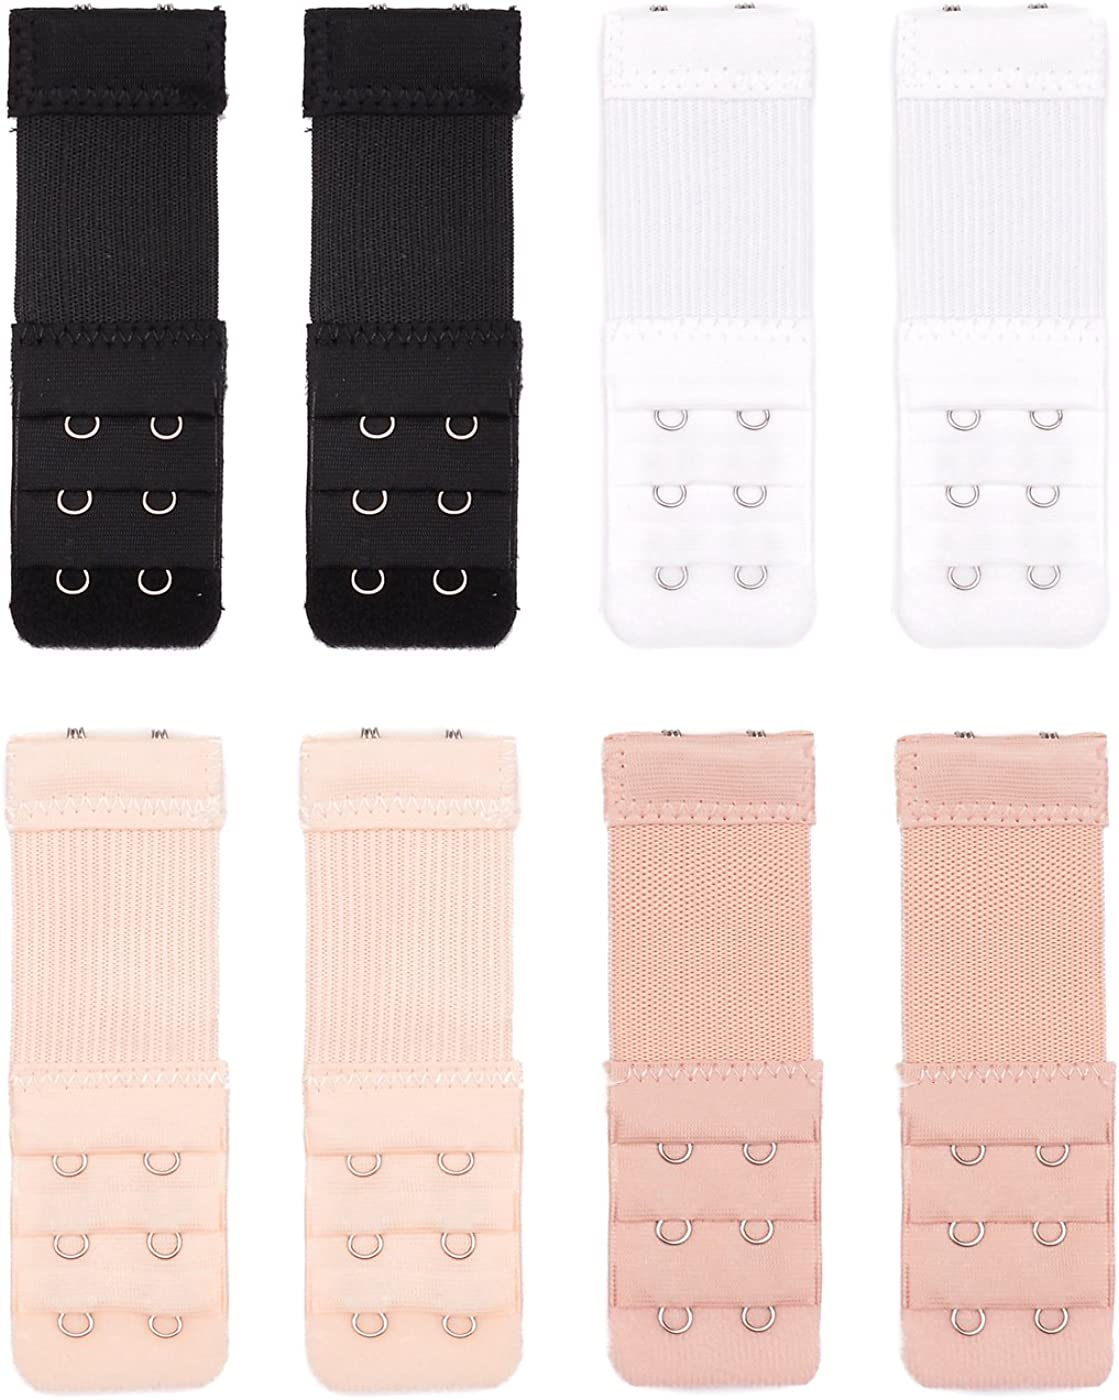 3 Rows 2 Hooks Joyshare 8 Pieces Bra Extender Bra Extension Strap 4 Colors